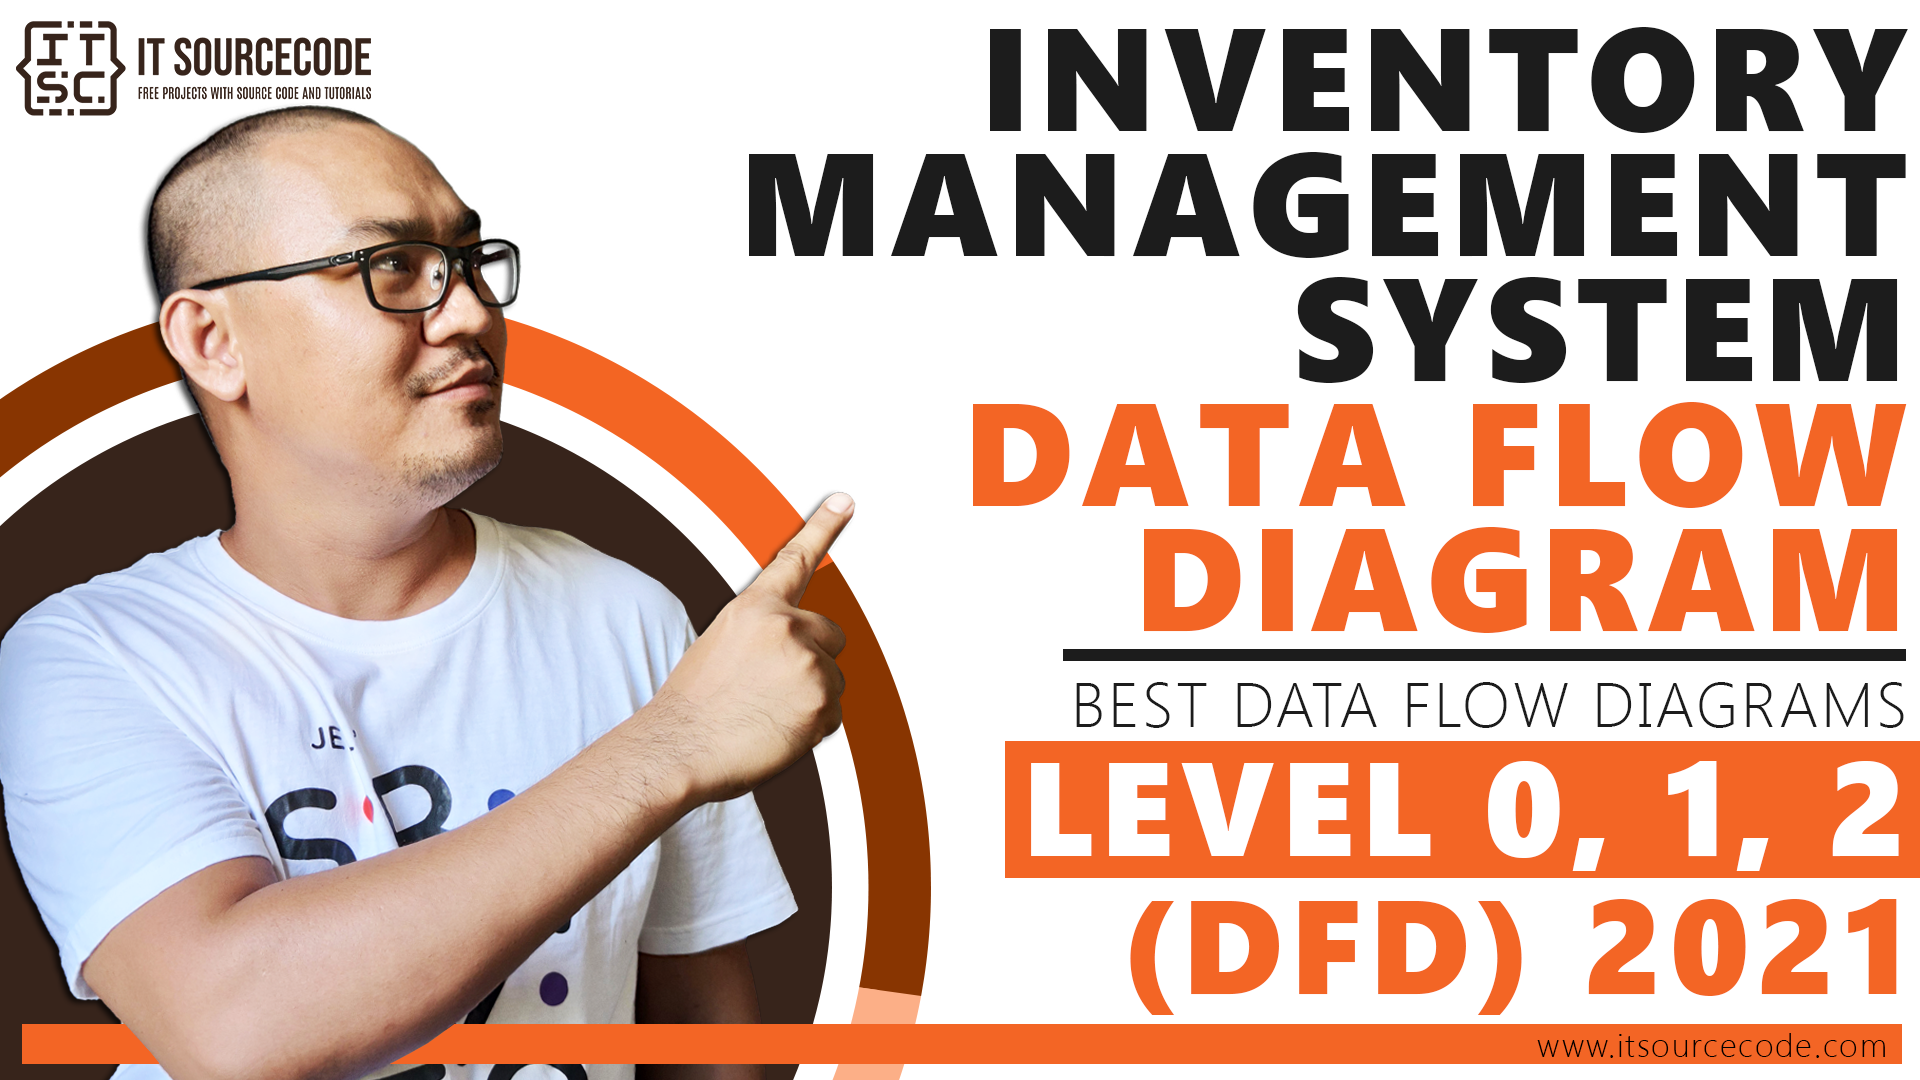 Best Data Flow Diagram - Inventory Management System DFD Level 0 1 2 - 2021